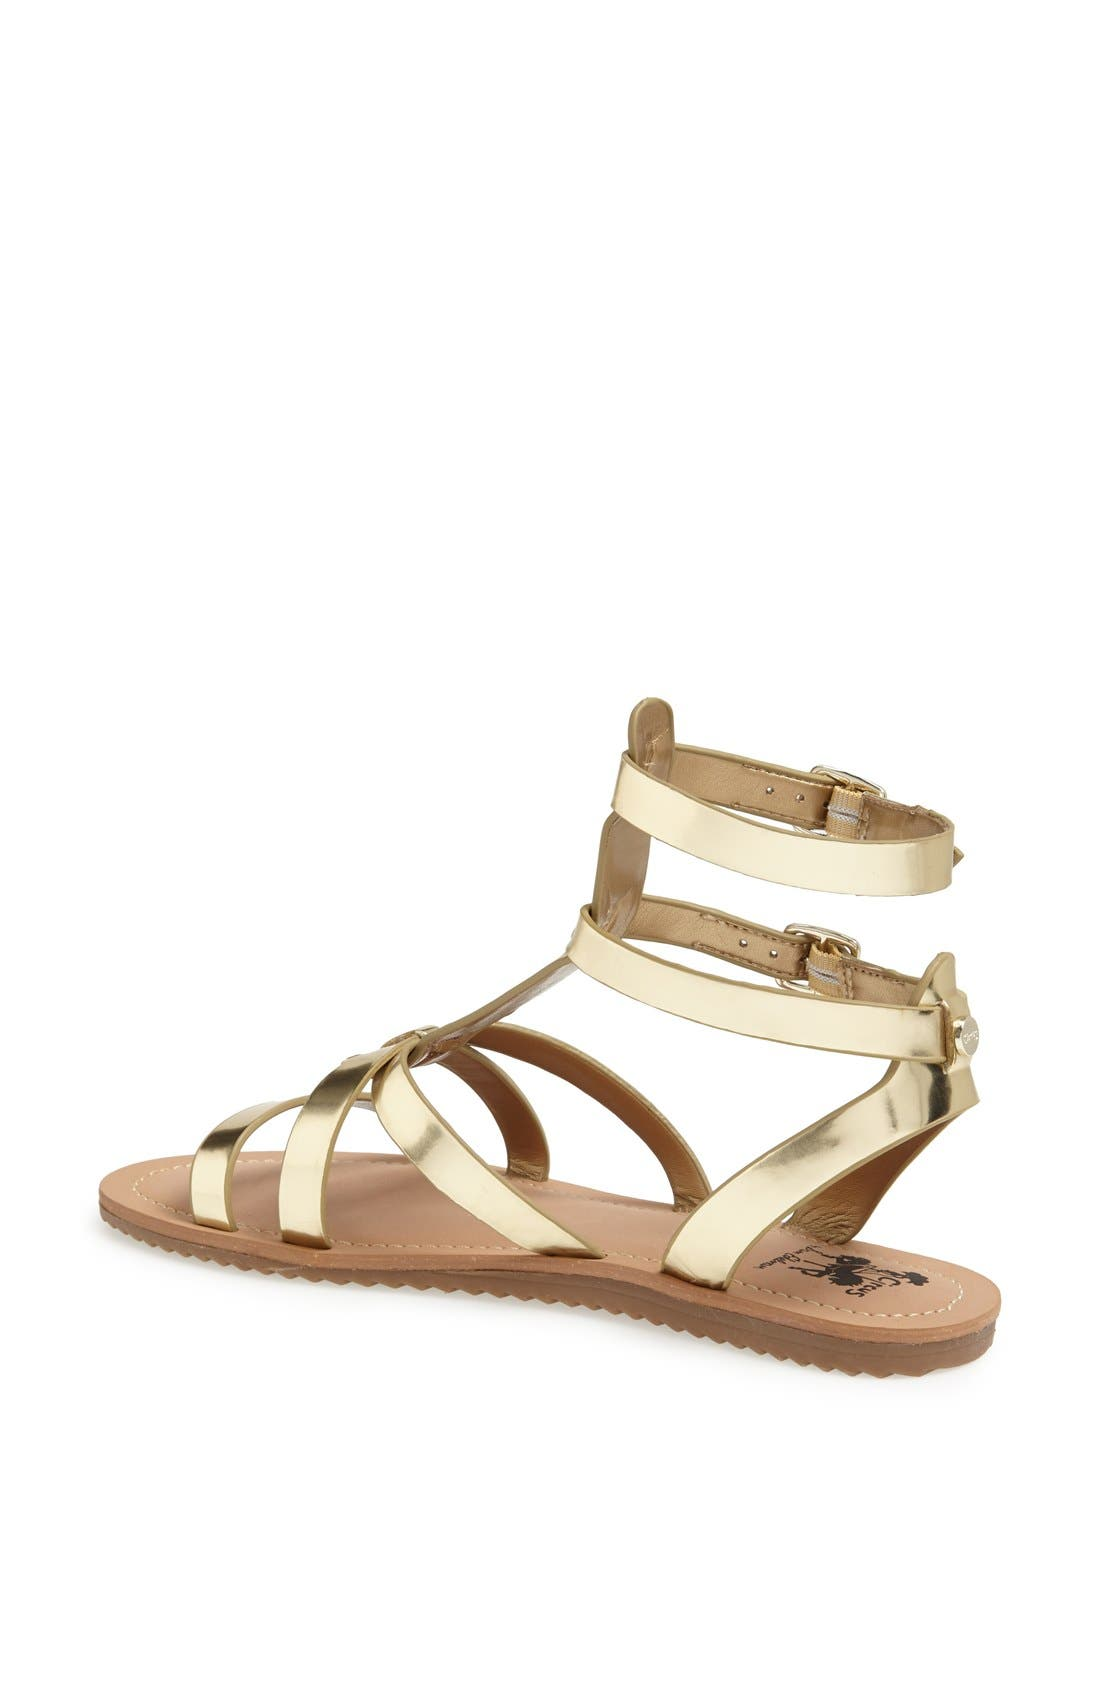 ,                             'Selma' Gladiator Sandal,                             Alternate thumbnail 22, color,                             710